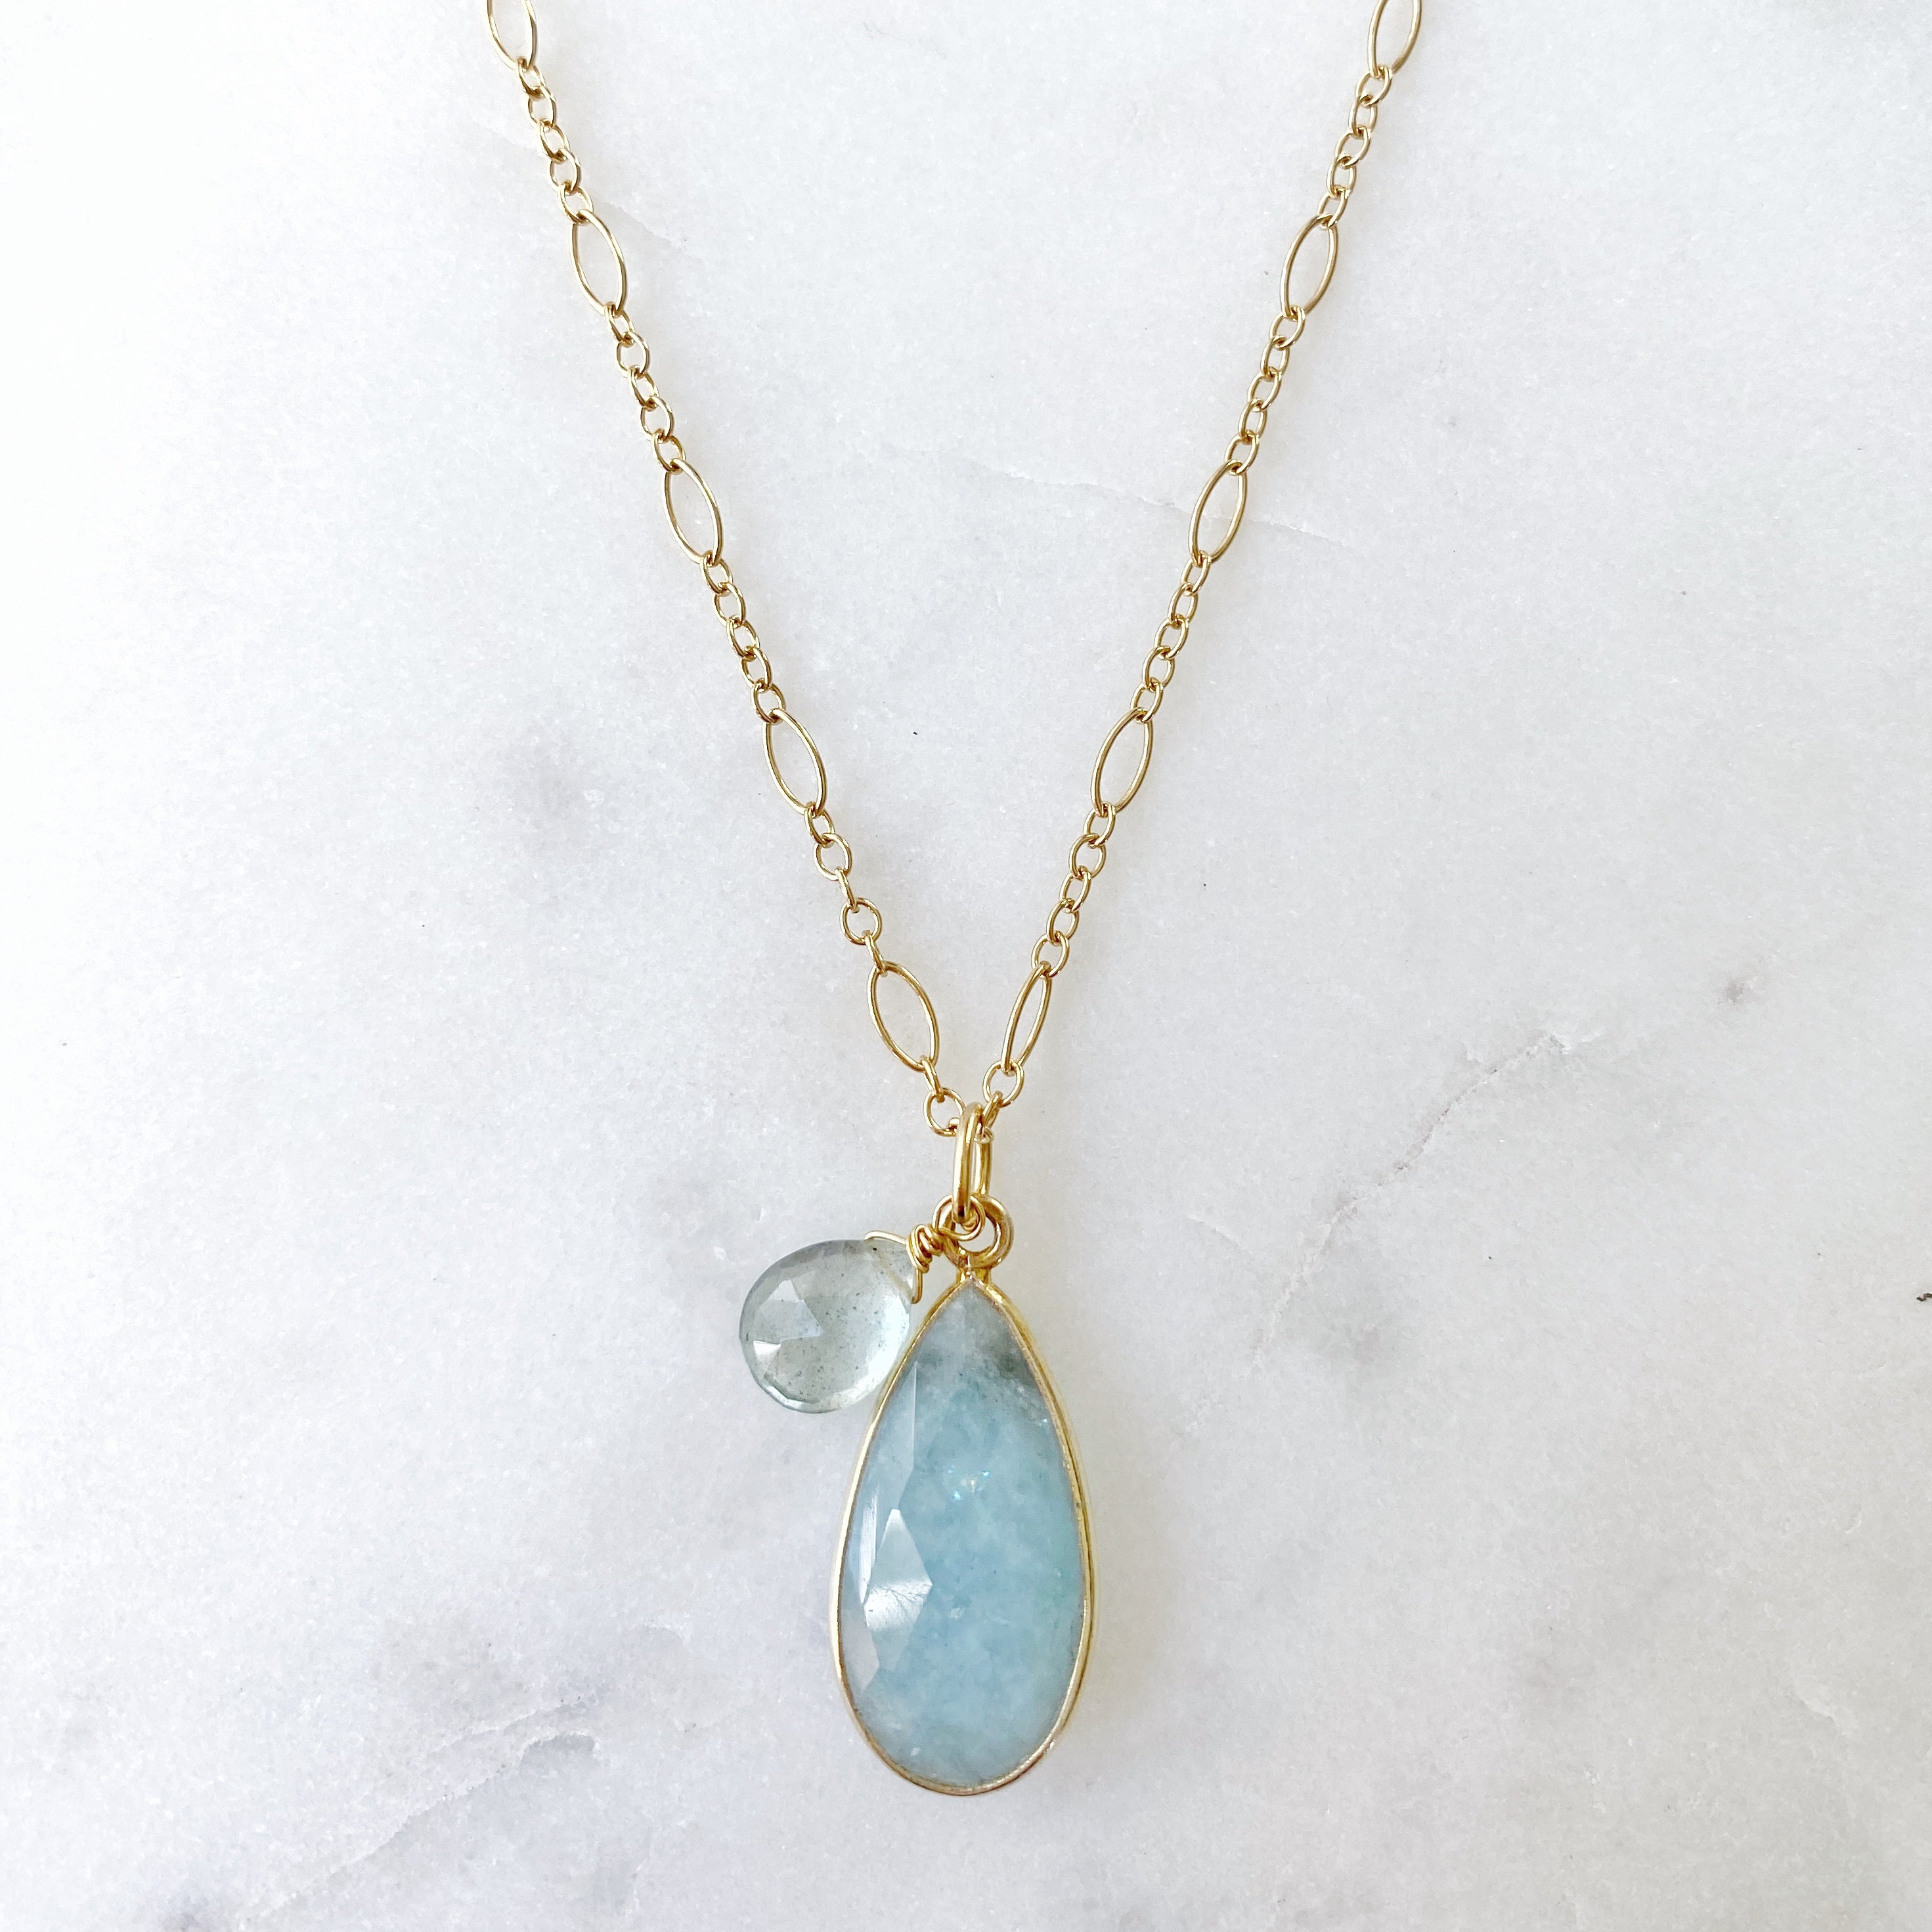 Private Reserve Necklace, Aquamarine